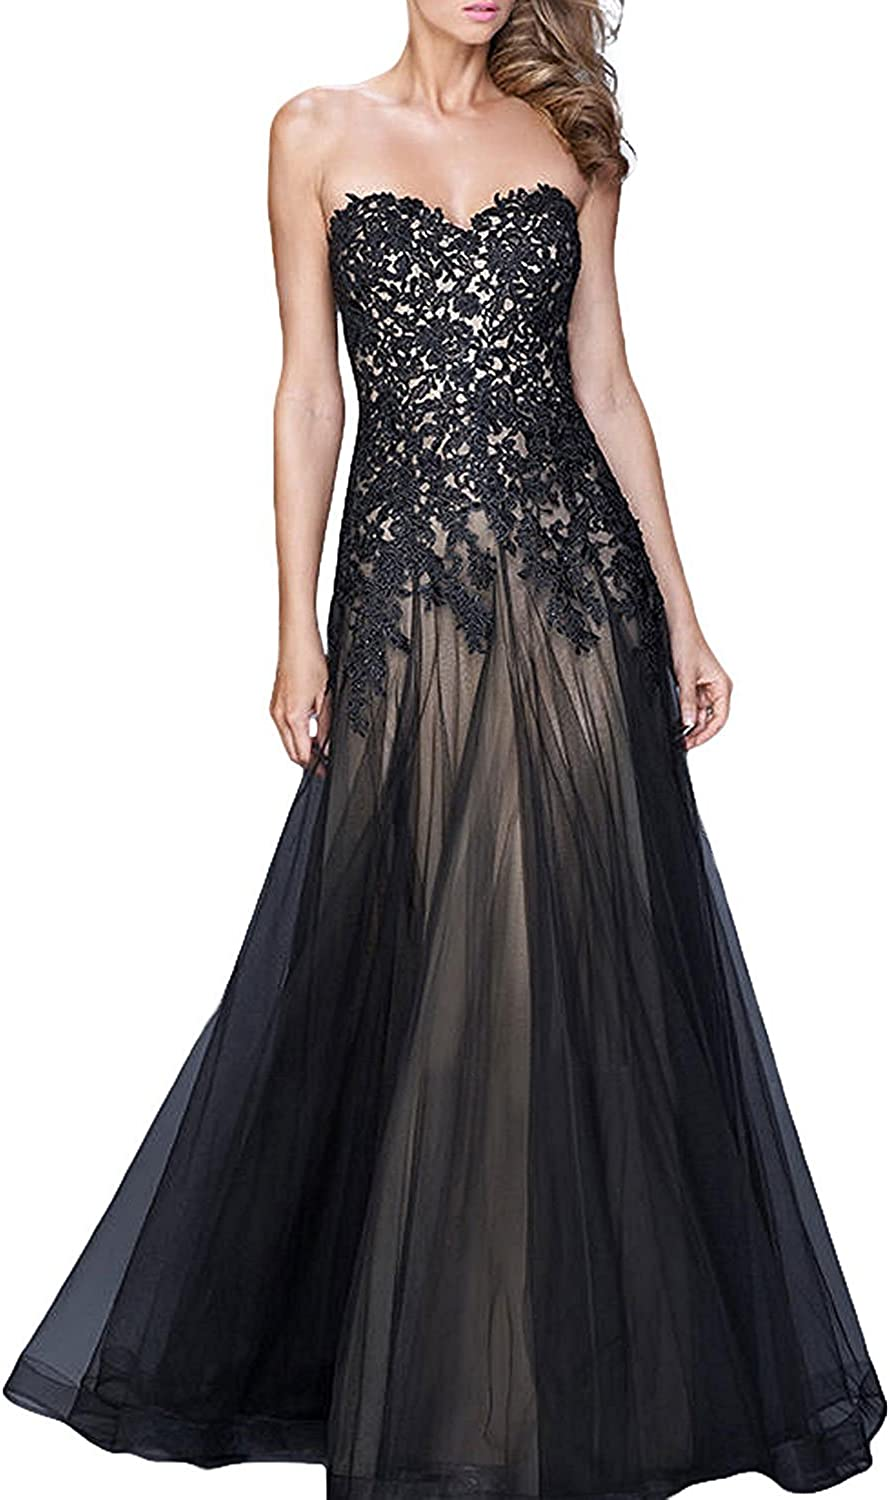 BEALEGAN Lady Women's Long A Line Tulle Lace Prom Formal Evening Party Gown